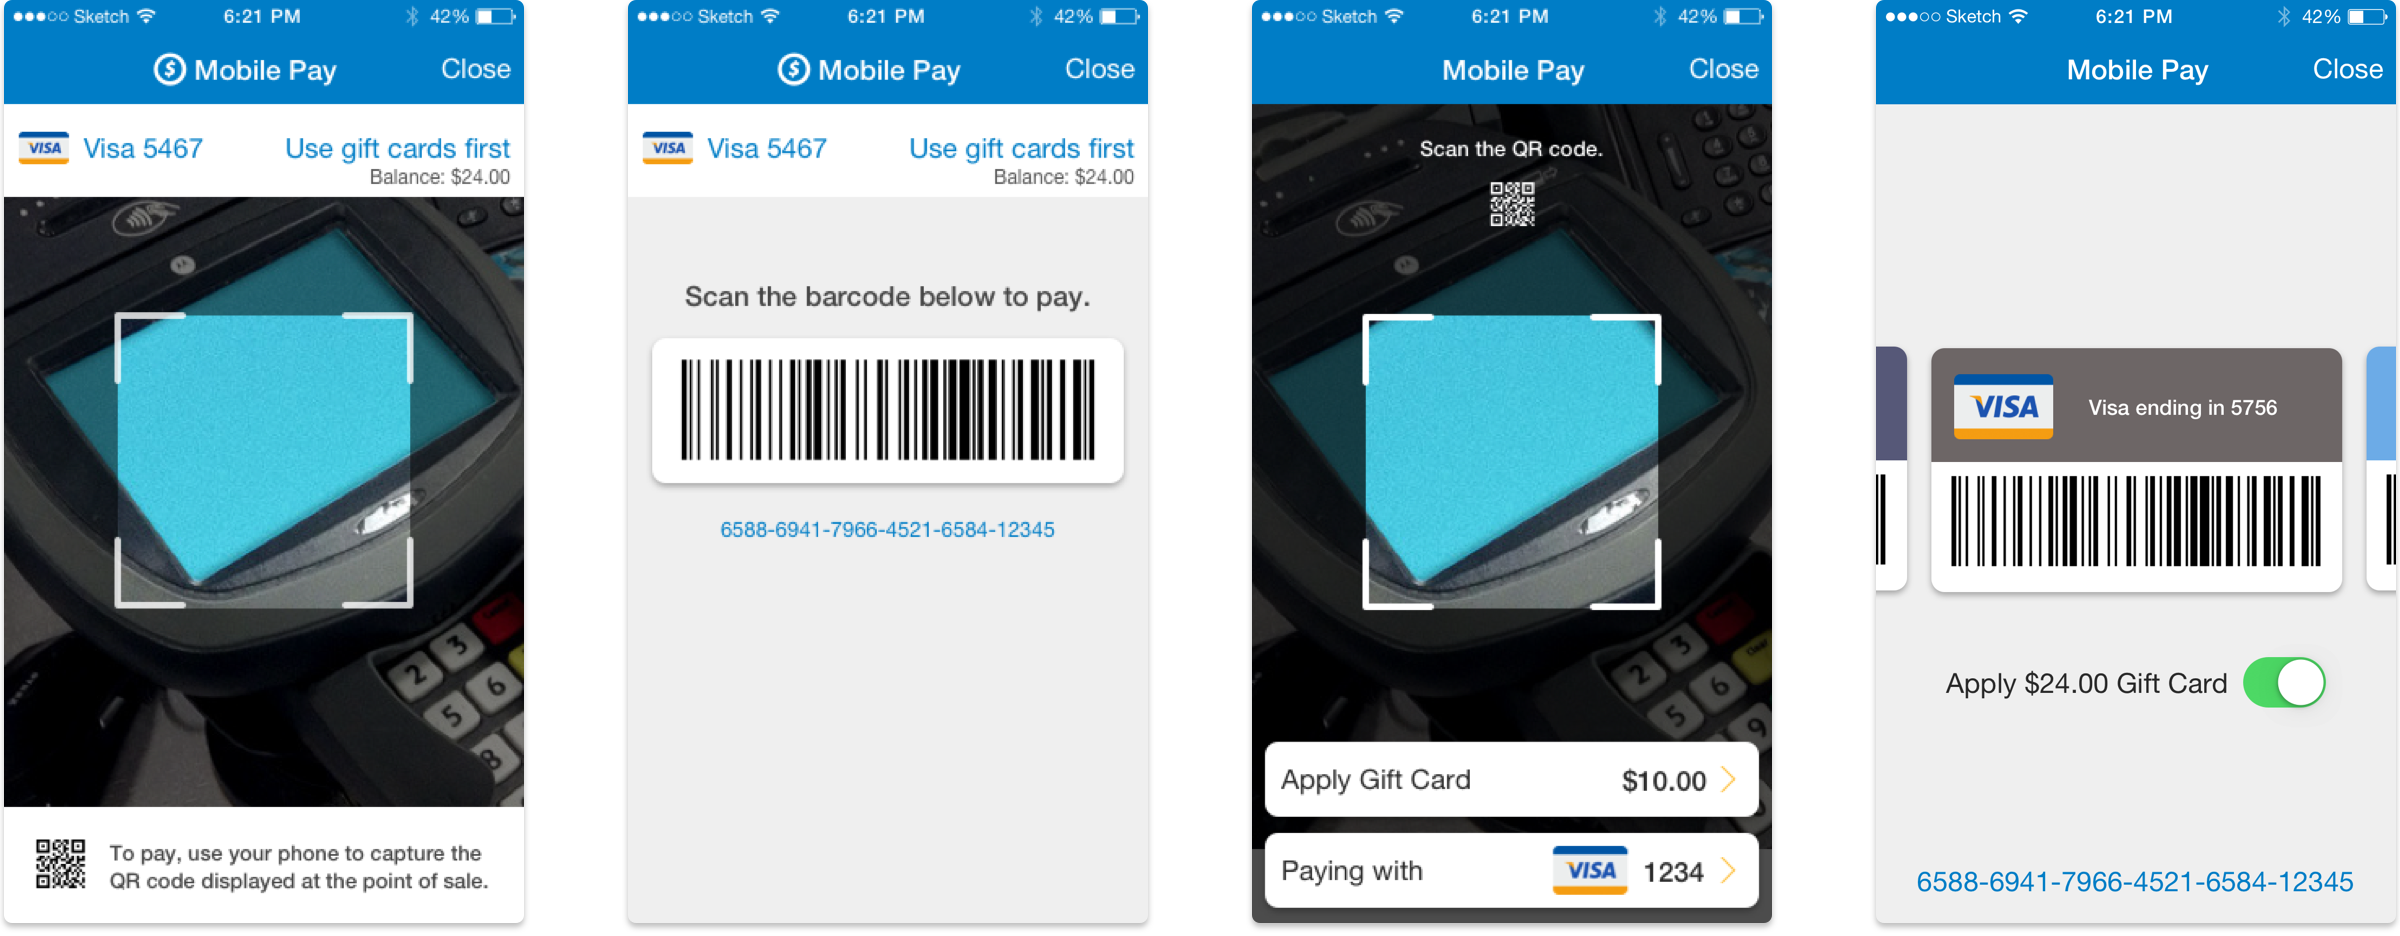 Initial exploration of payment interfaces